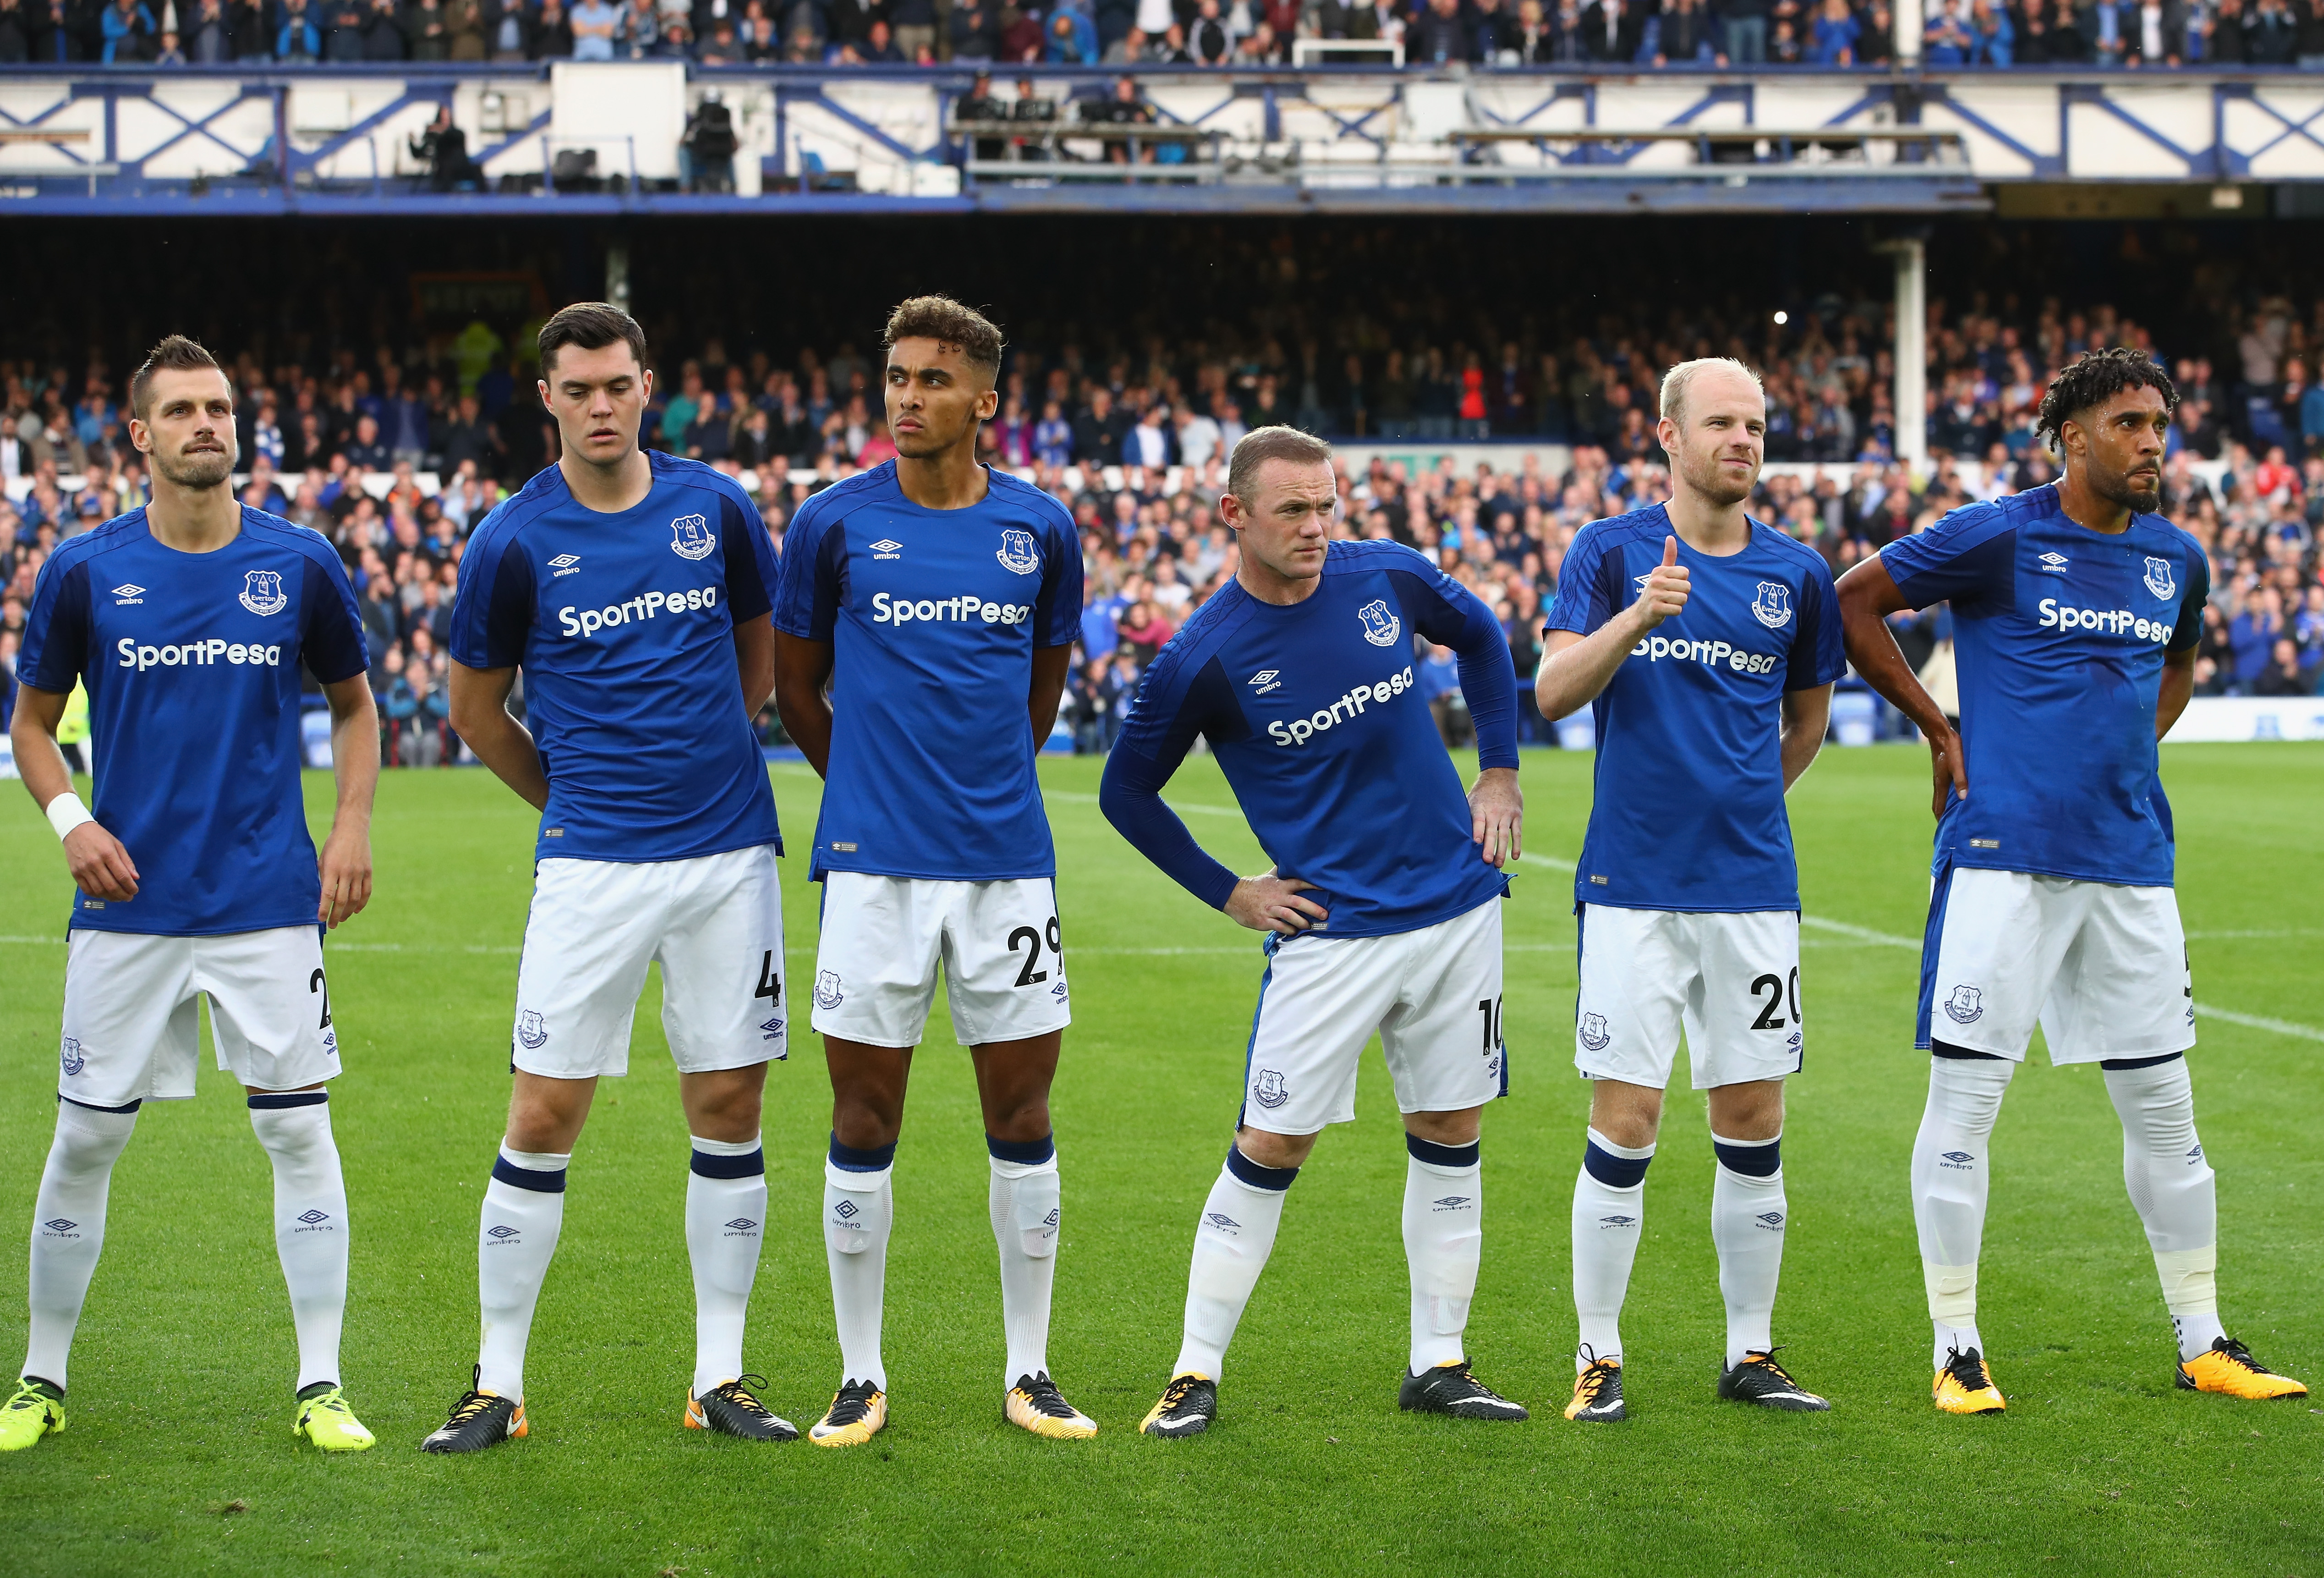 Everton vs stoke city betting preview free tennis betting tips for today